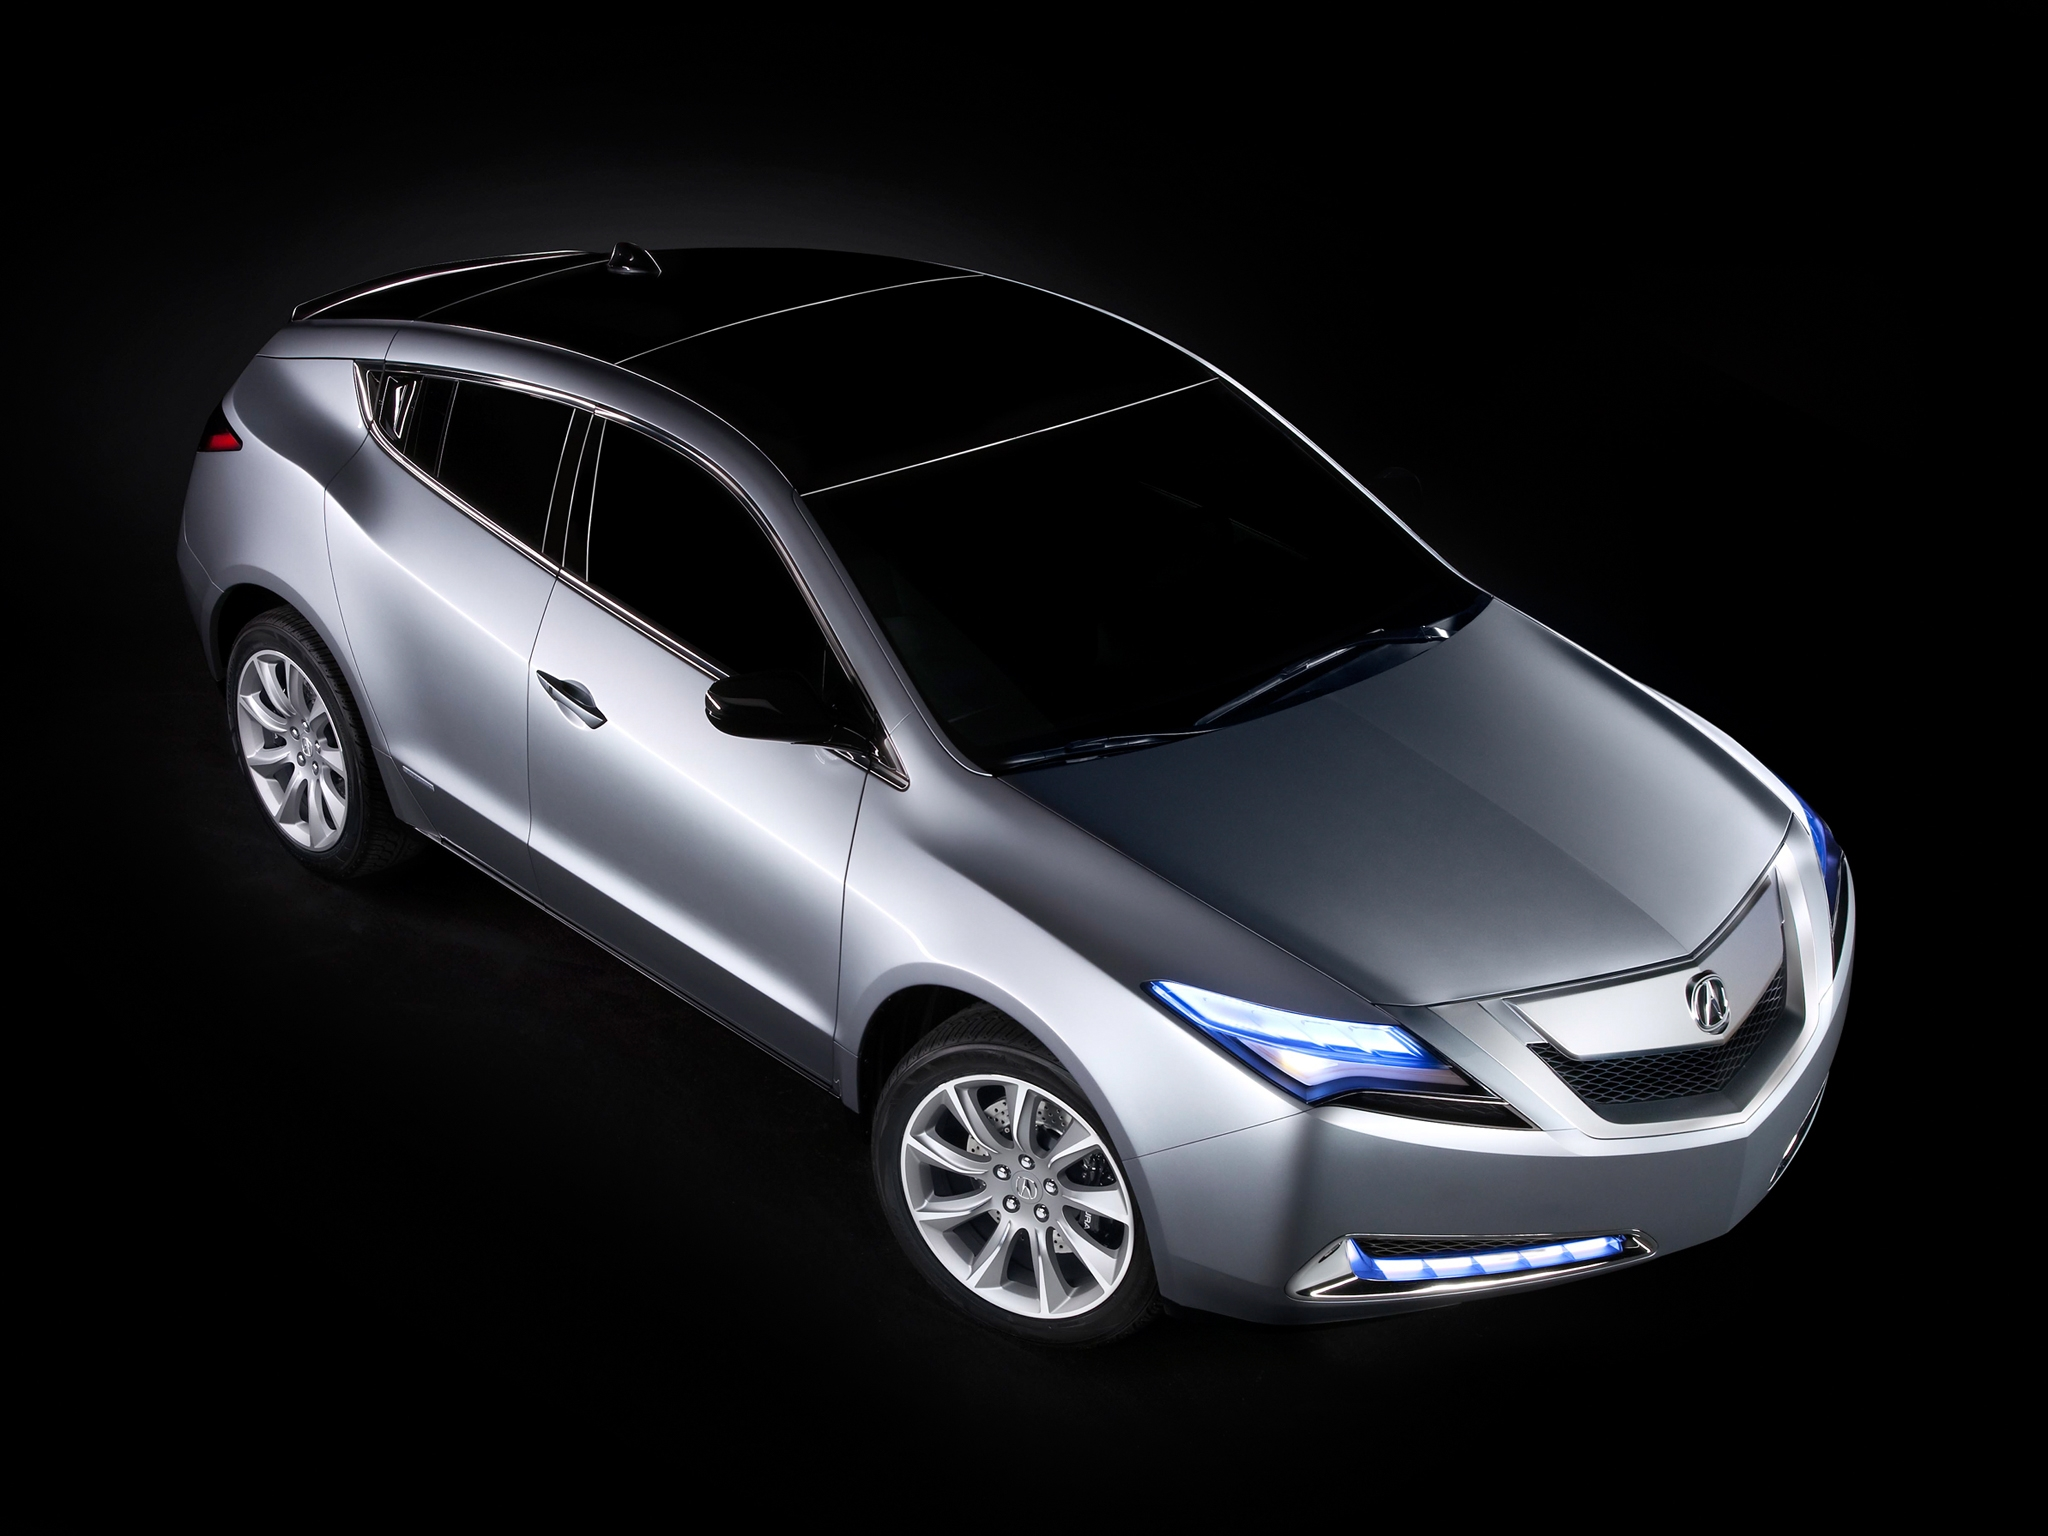 52131 download wallpaper Cars, Acura, Zdx, 2009, Metallic Gray, Grey Metallic, Concept Car, View From Above, Style, Auto screensavers and pictures for free